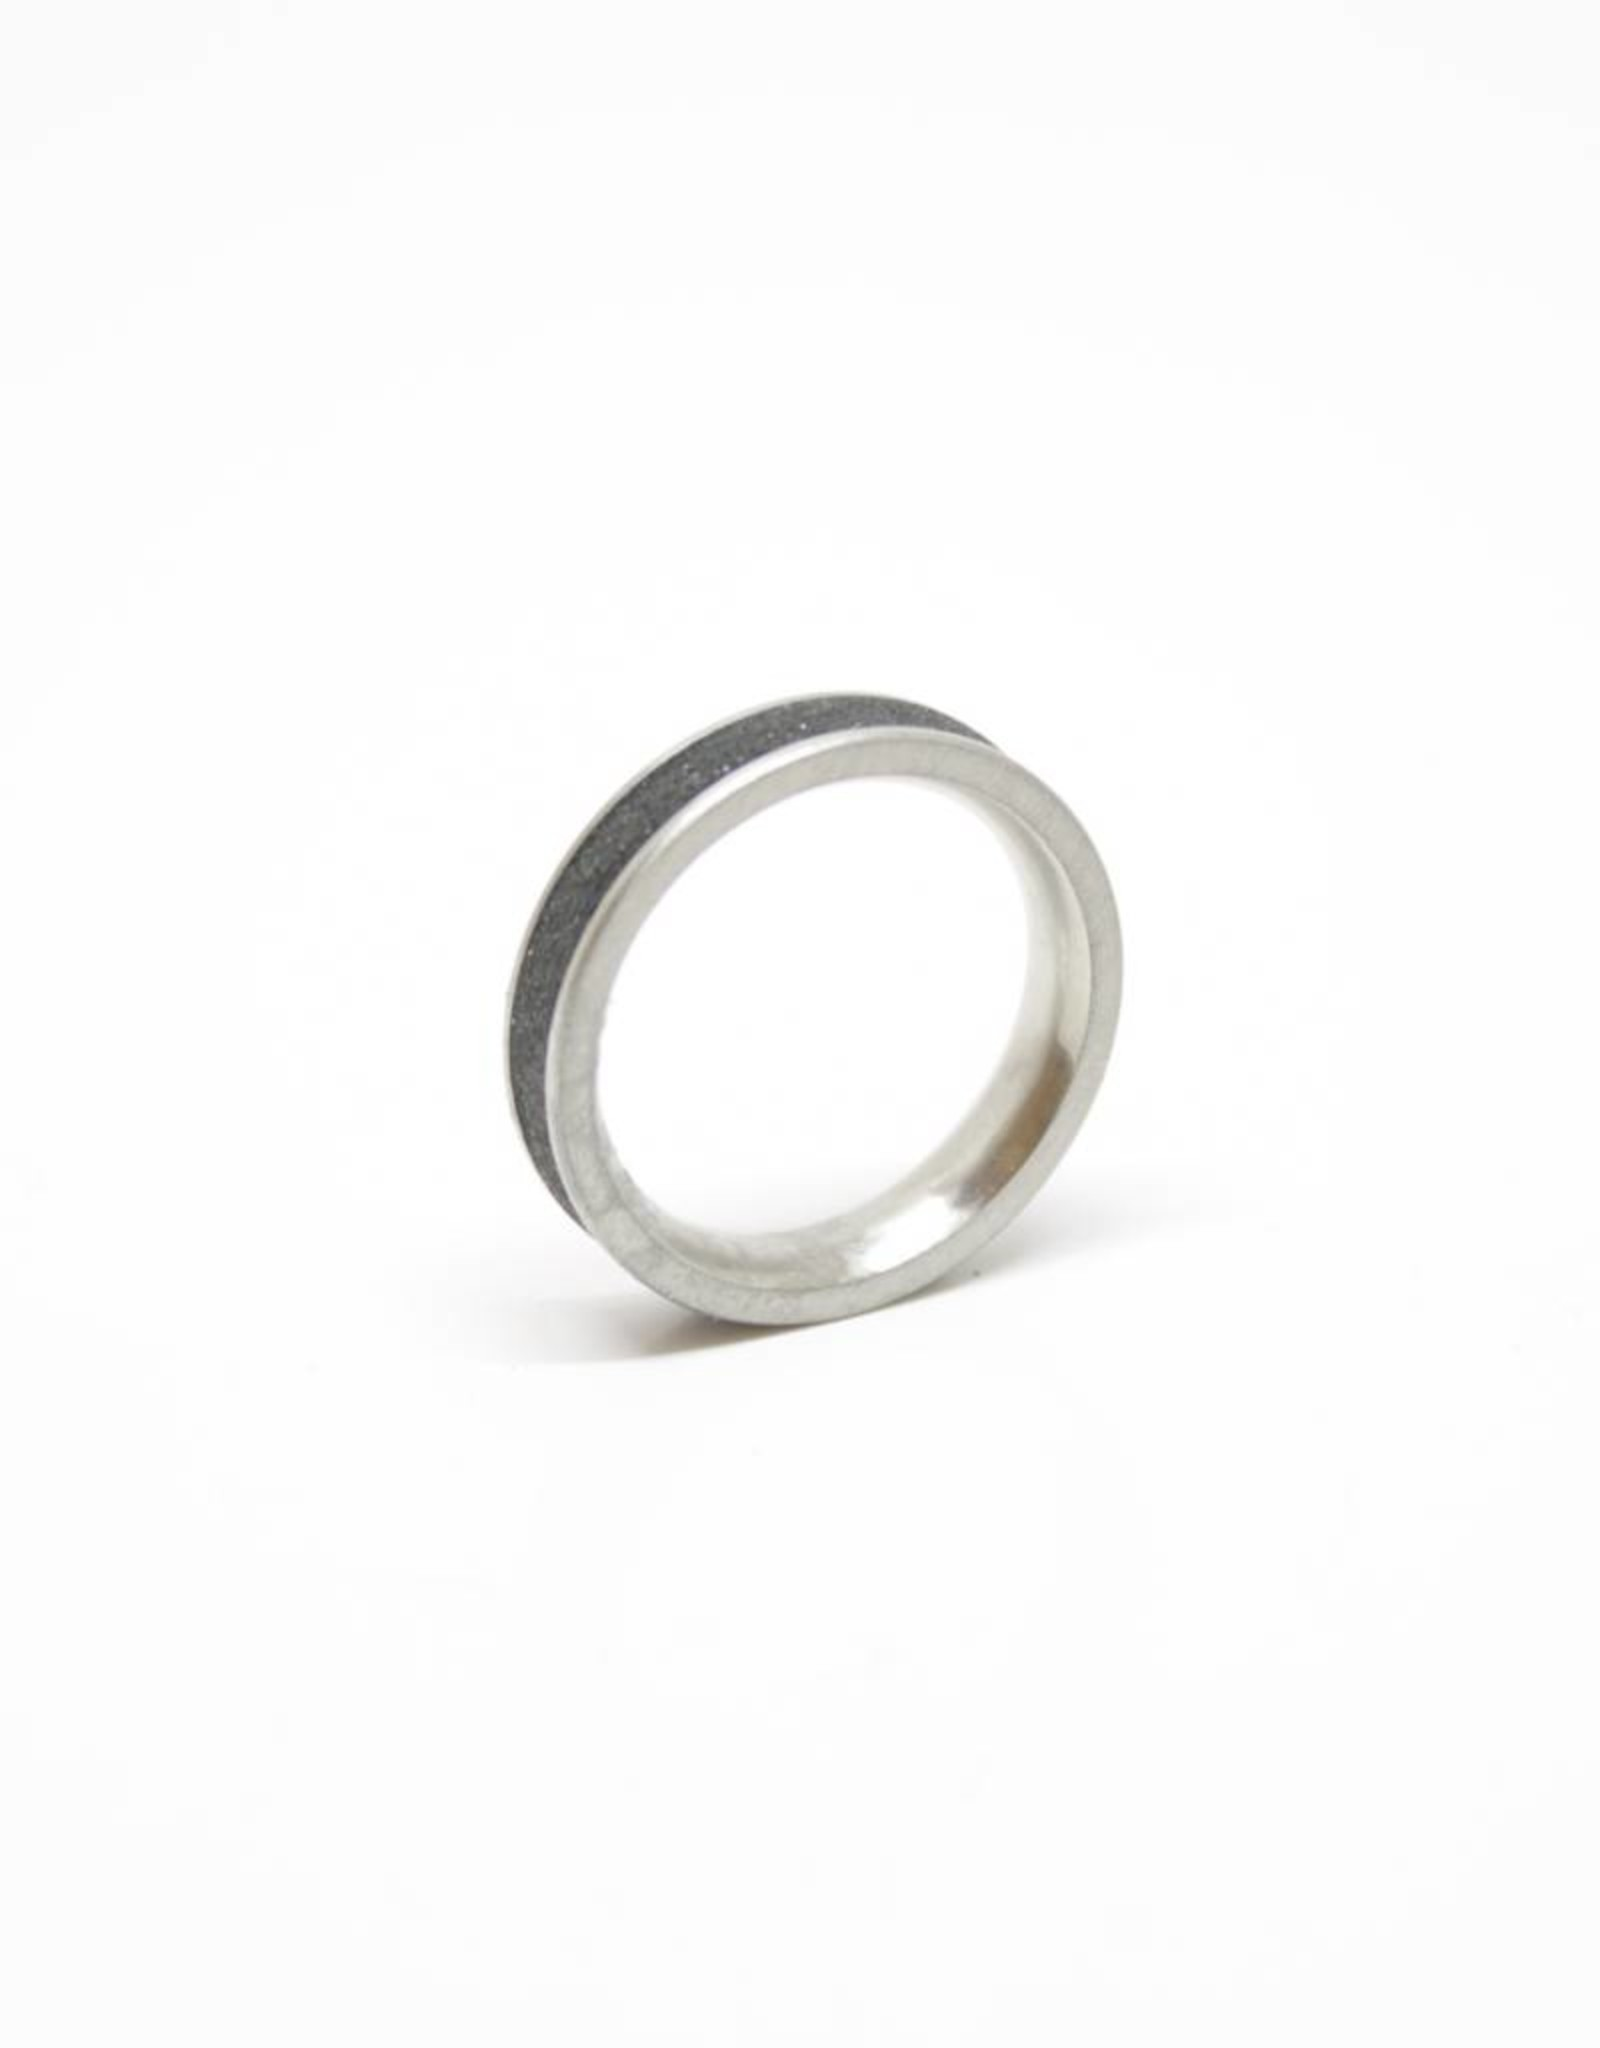 Konzuk Coal Black Concrete Ring with Diamond Dust - Thin